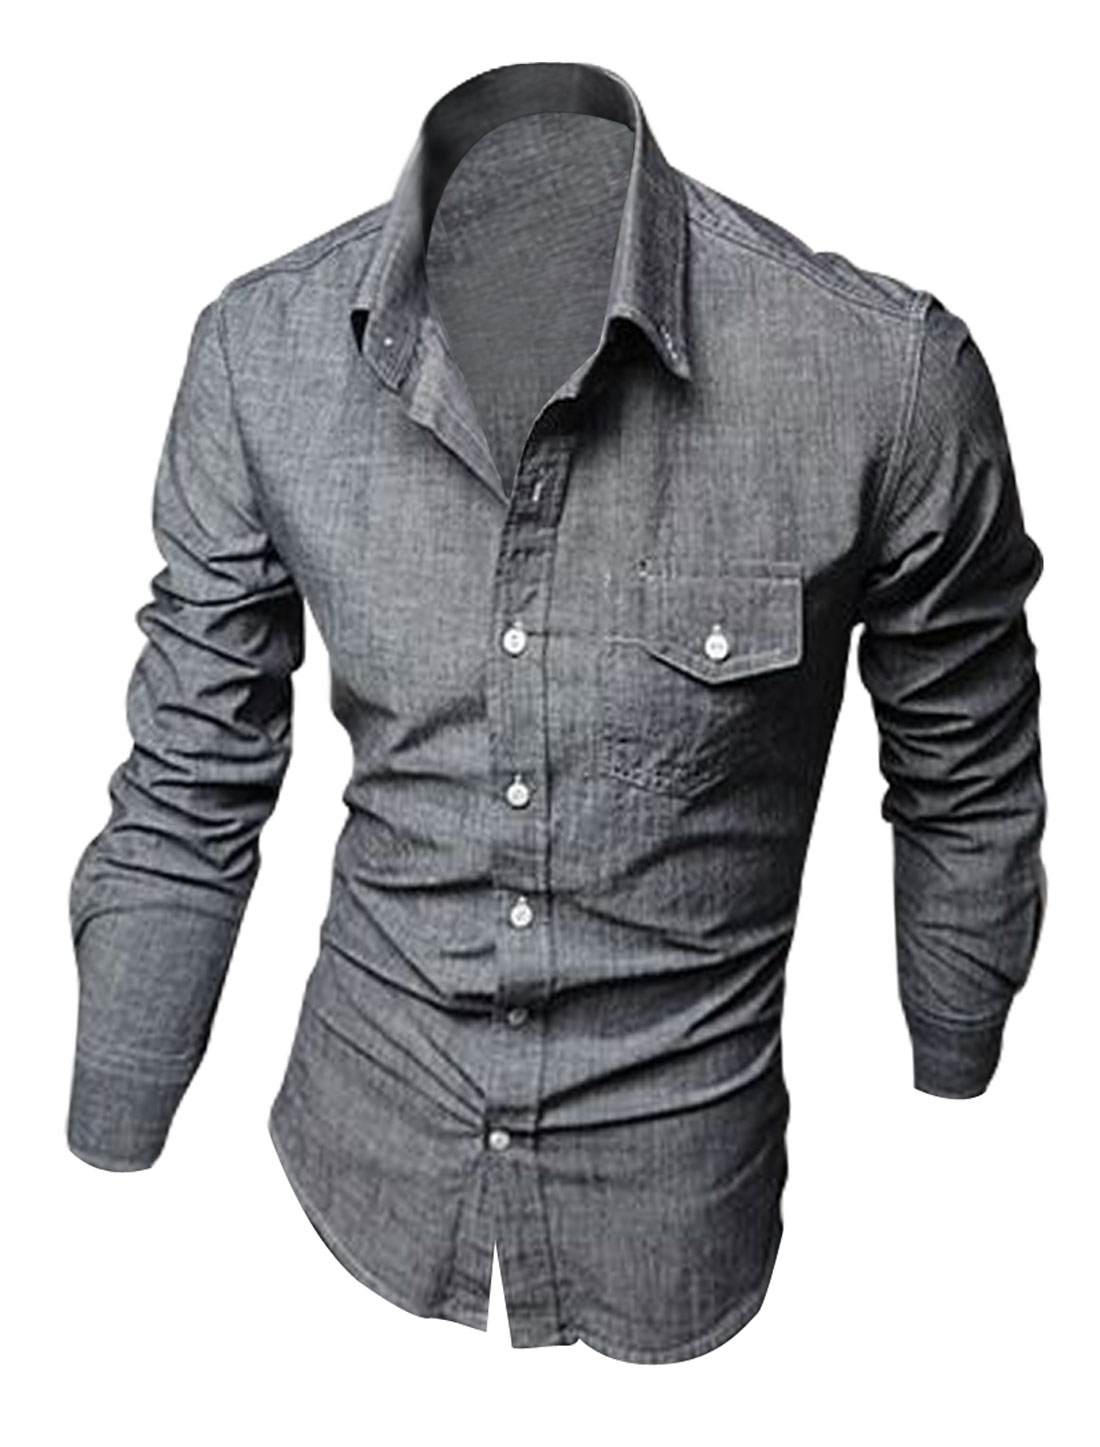 Man Chic Chest Flap Pockets Design Button Down Front Gray Denim Shirt M